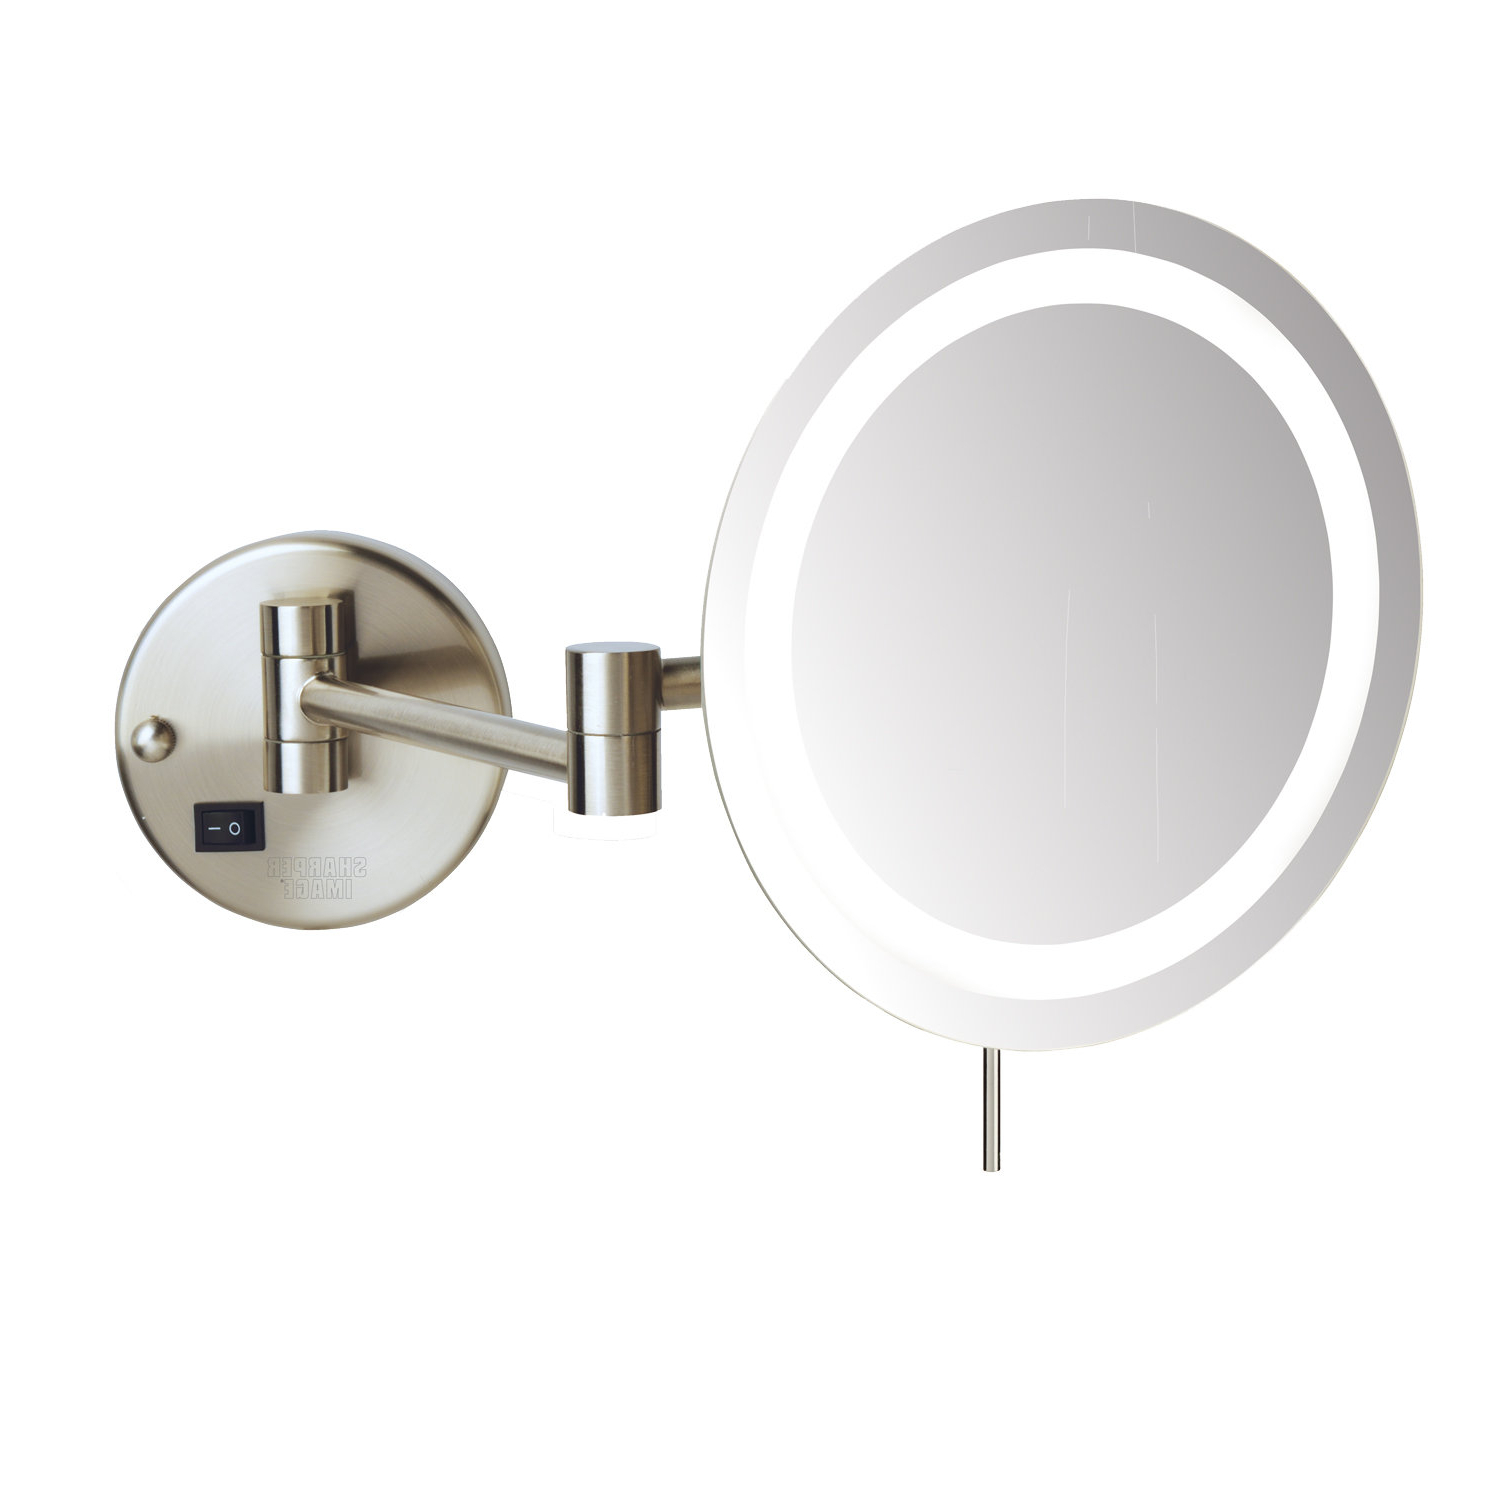 Palumbo Led 8X Magnifying Wall Mount Makeup Mirror With Most Recent Make Up Wall Mirrors (Gallery 15 of 20)